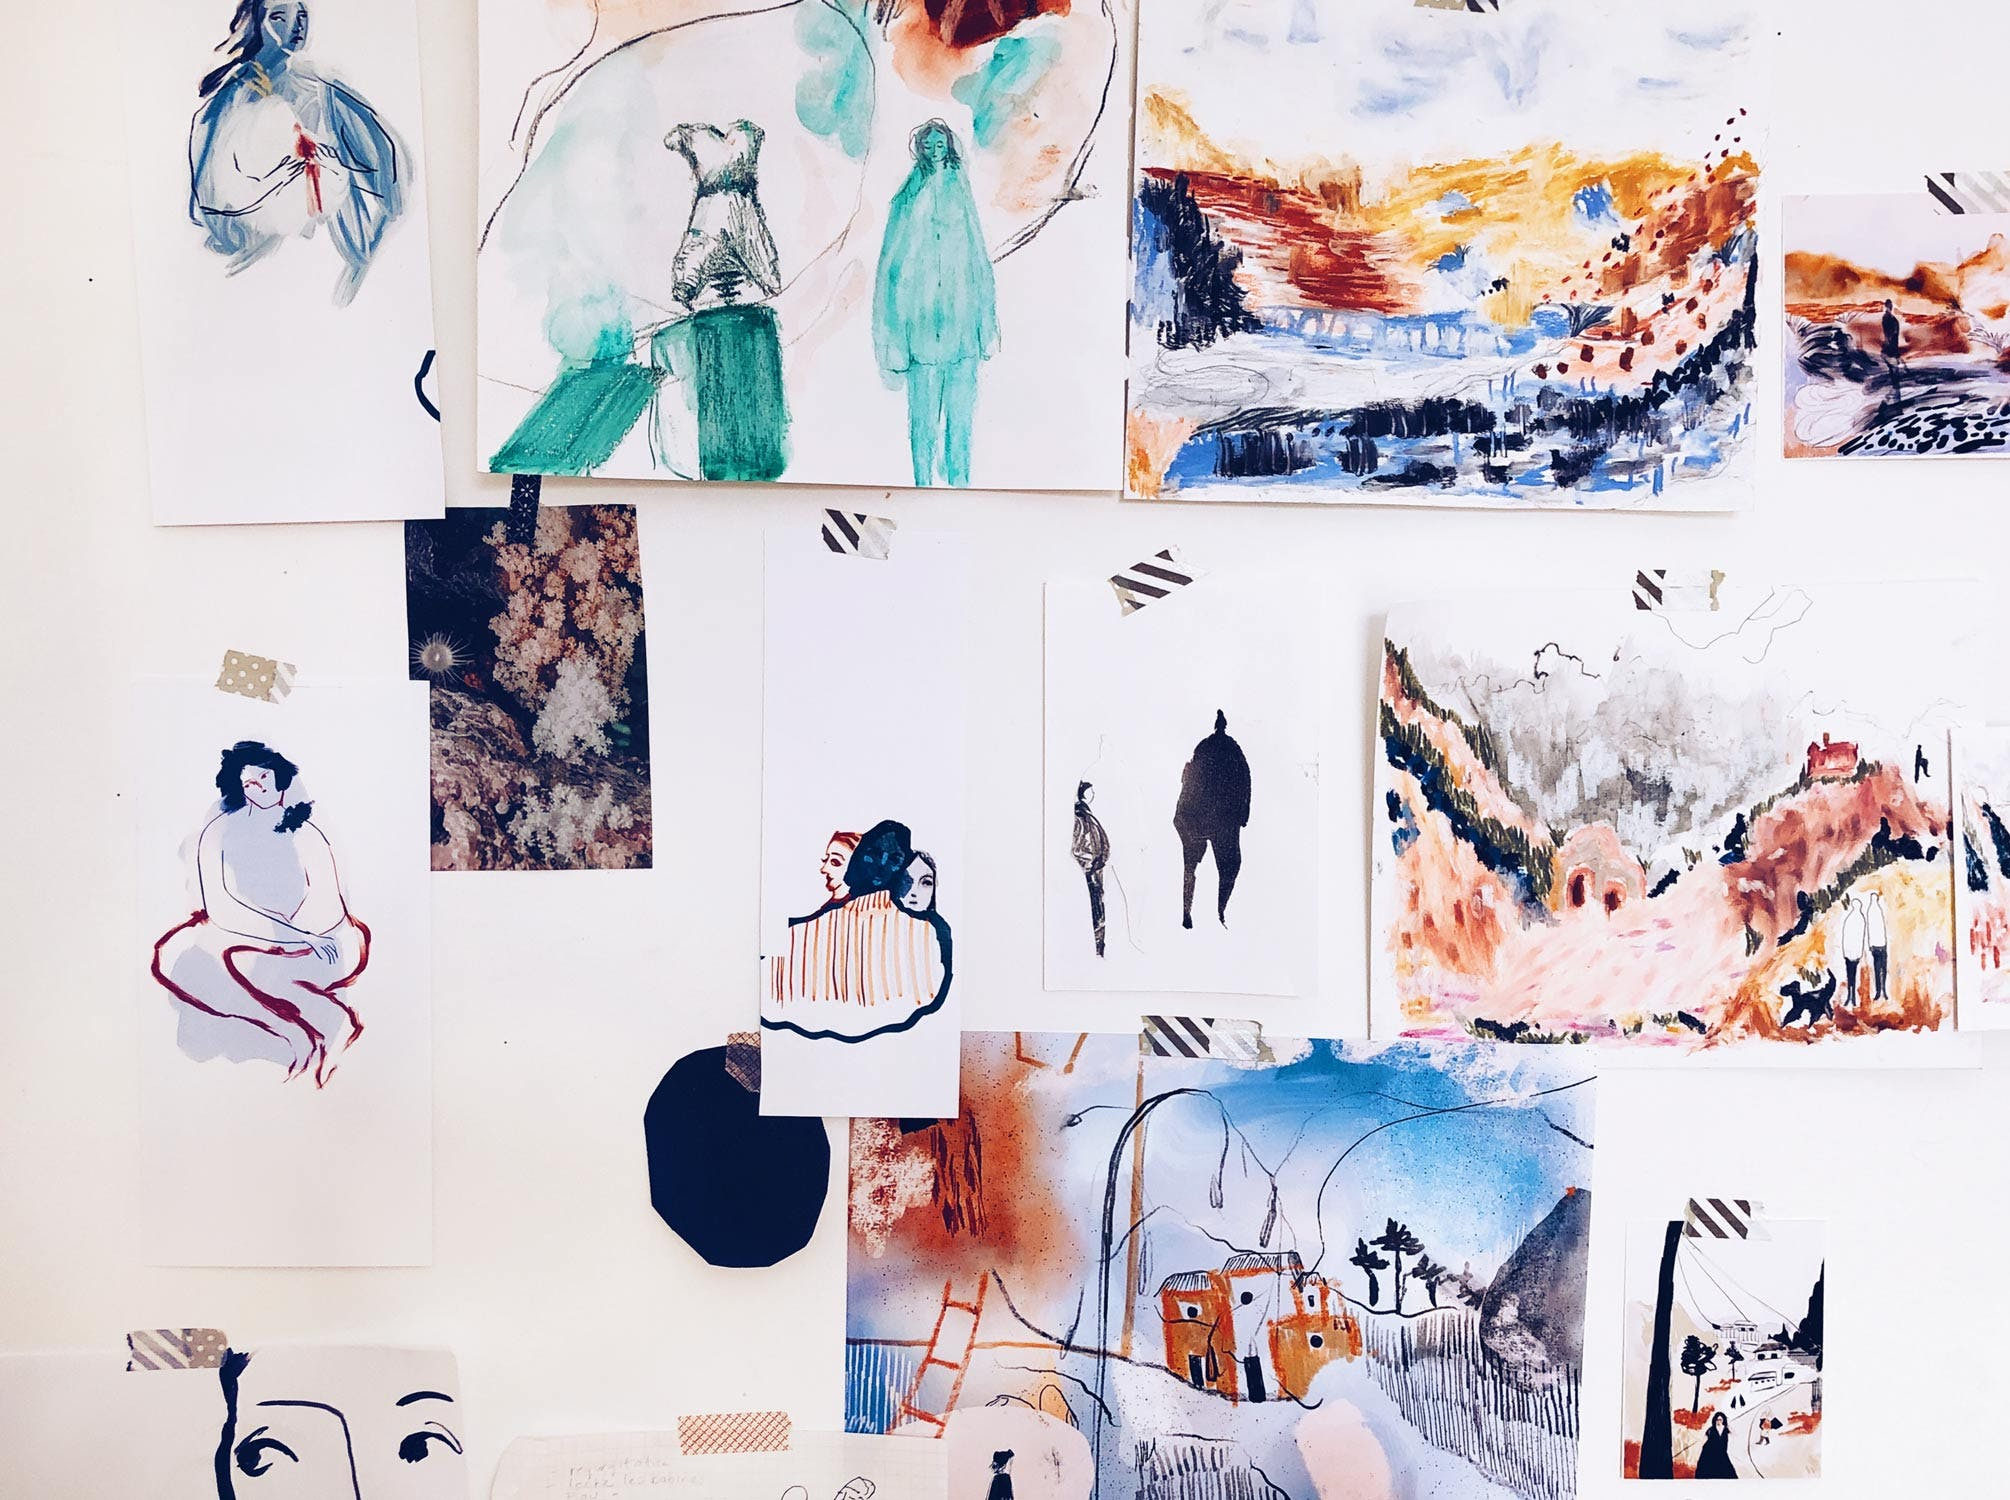 A wall with colourful drawings and figures